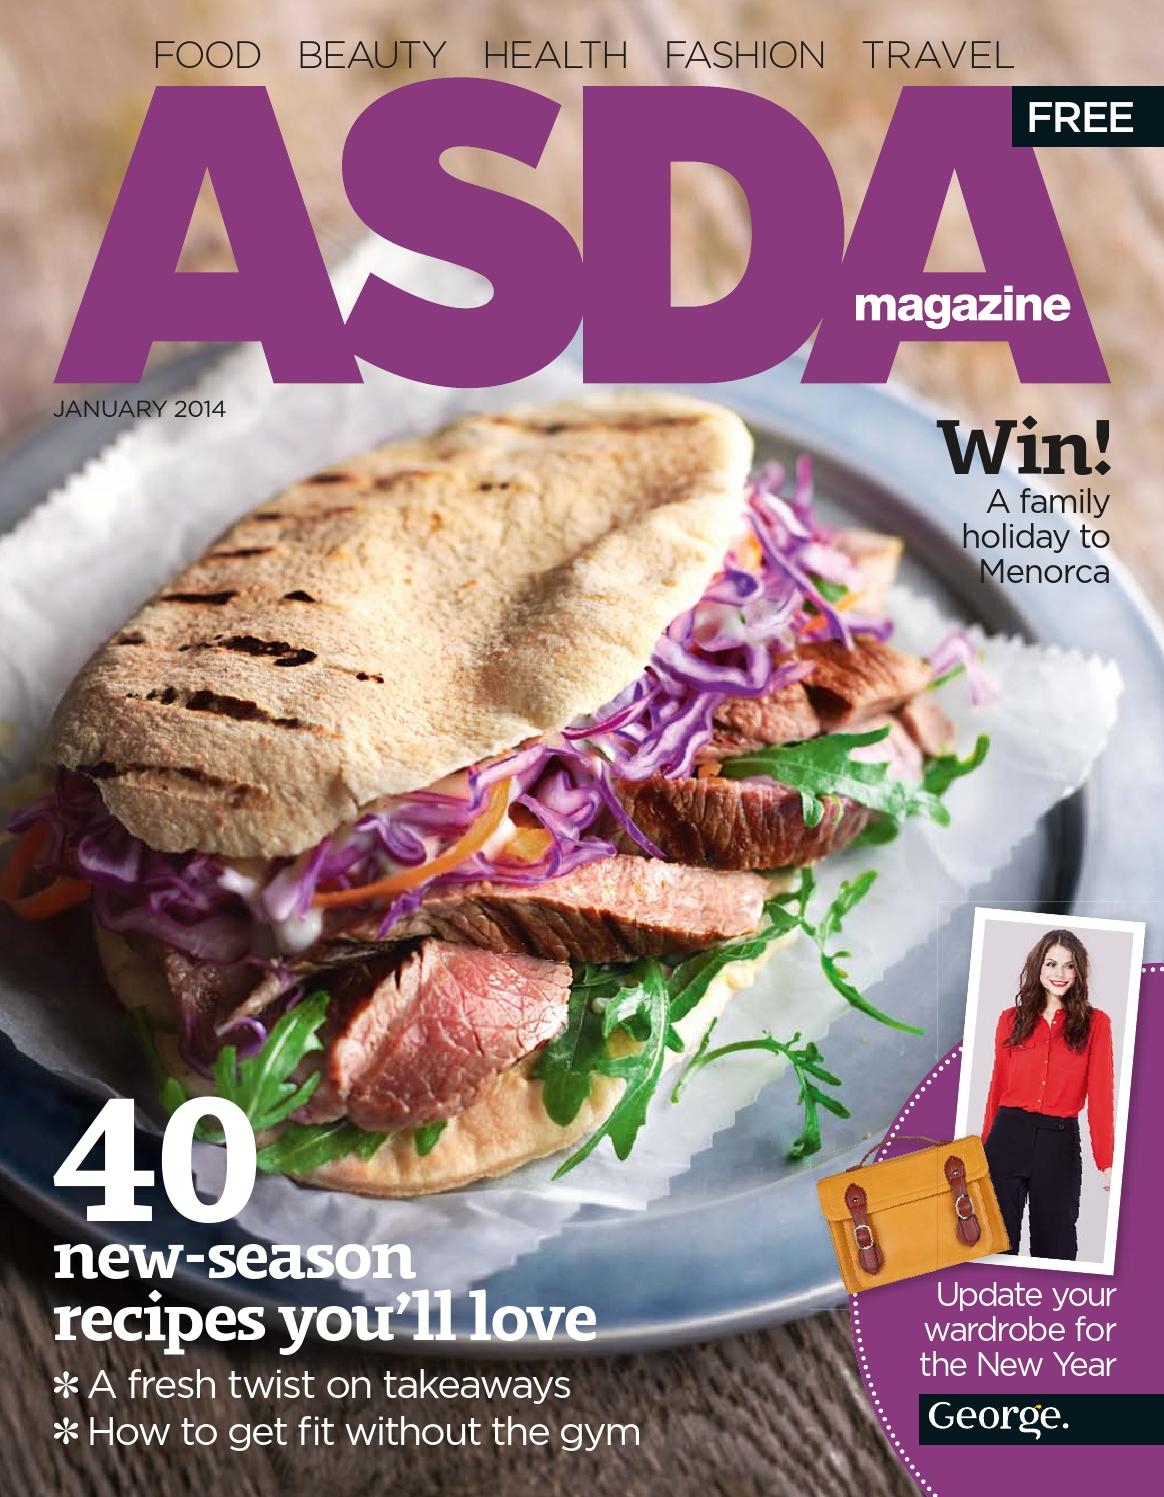 Asda magazine february 2013 by asda issuu asda magazine january 2014 solutioingenieria Images